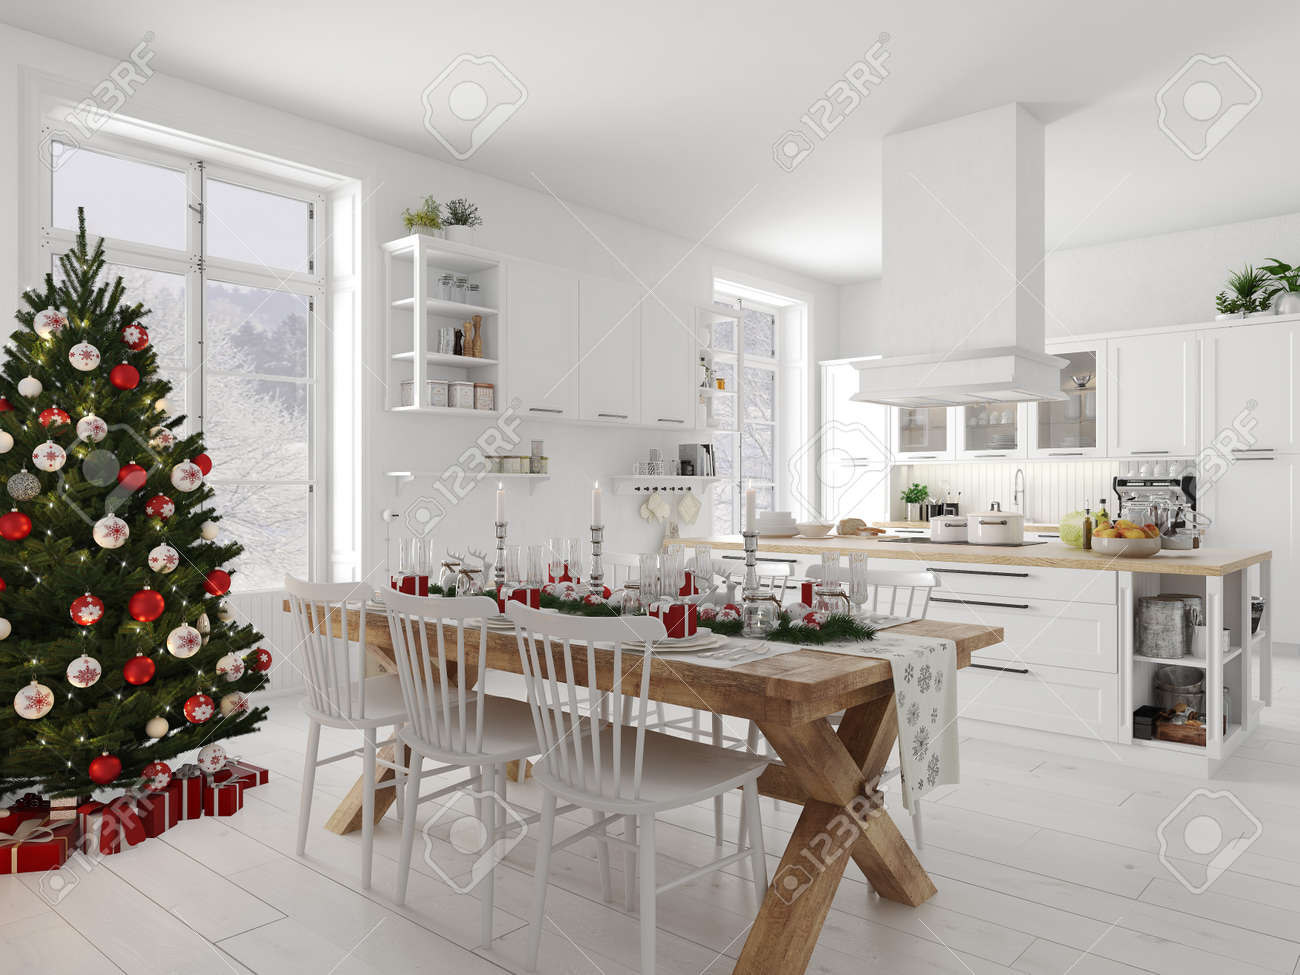 nordic kitchen with christmas decoration by day. 3d rendering - 91387472